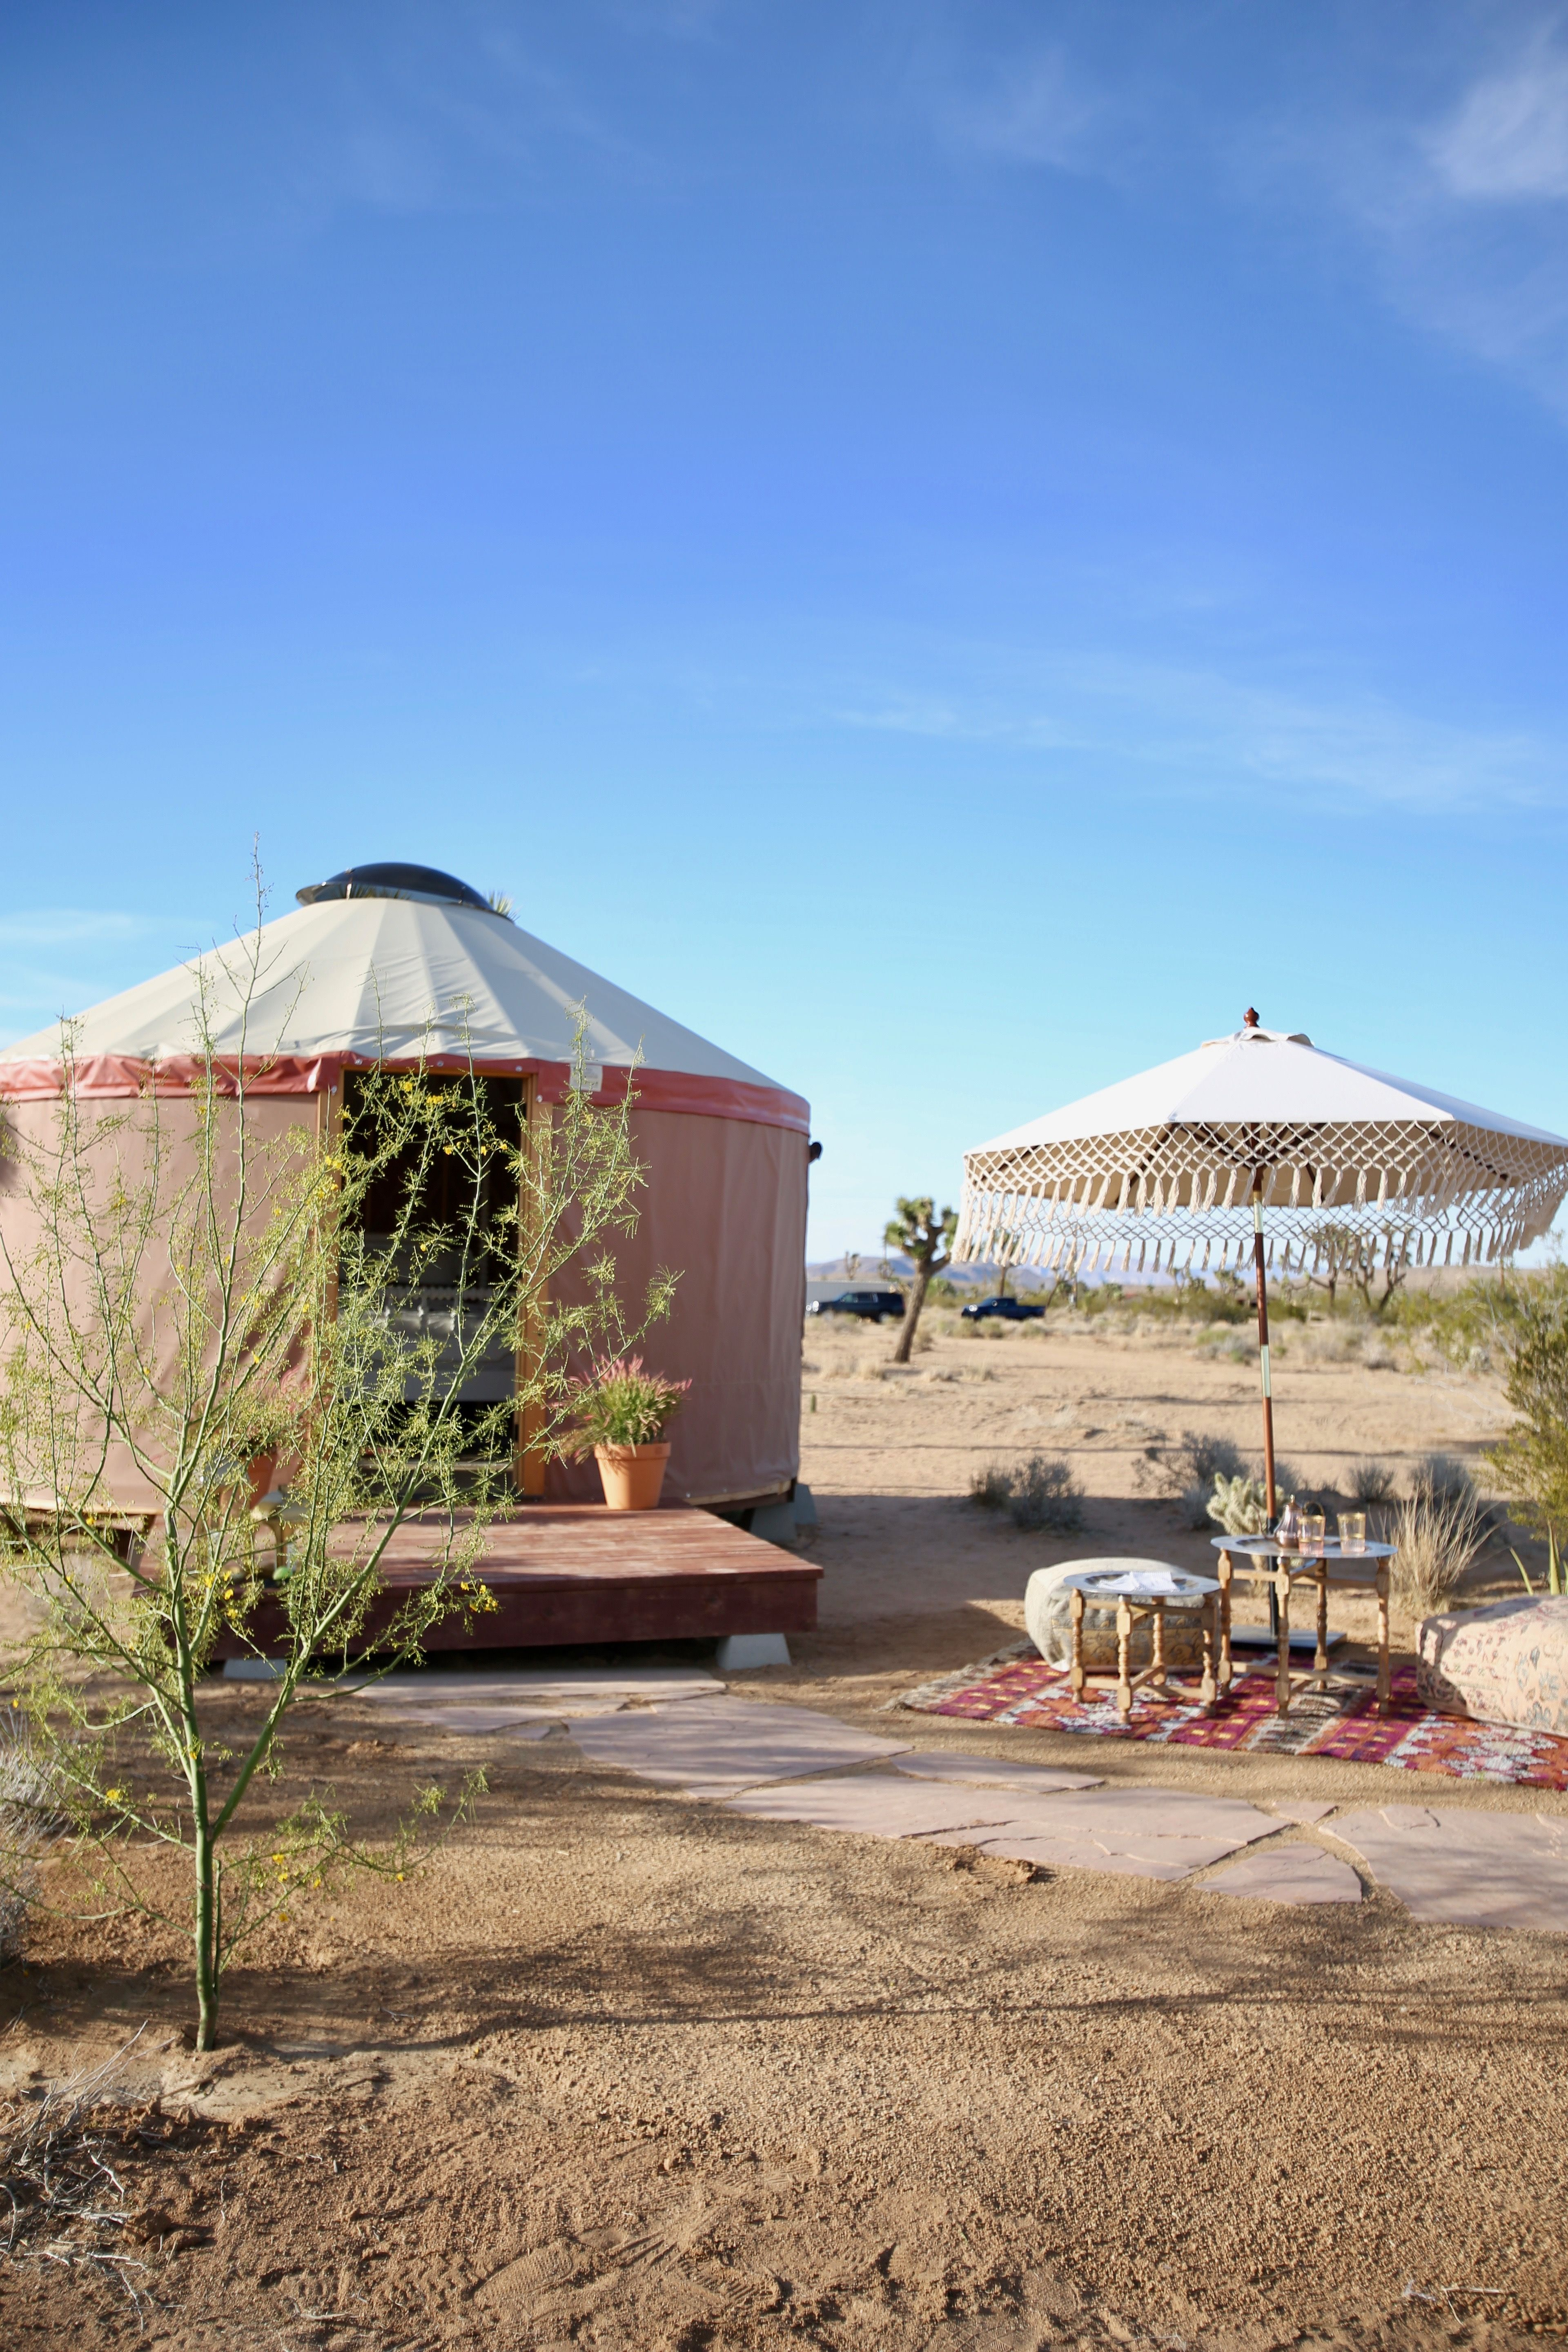 Yurt Joshua Tree : Established in 1983, we have been your place to stop in for great food, refreshing cocktails, and friendly people.